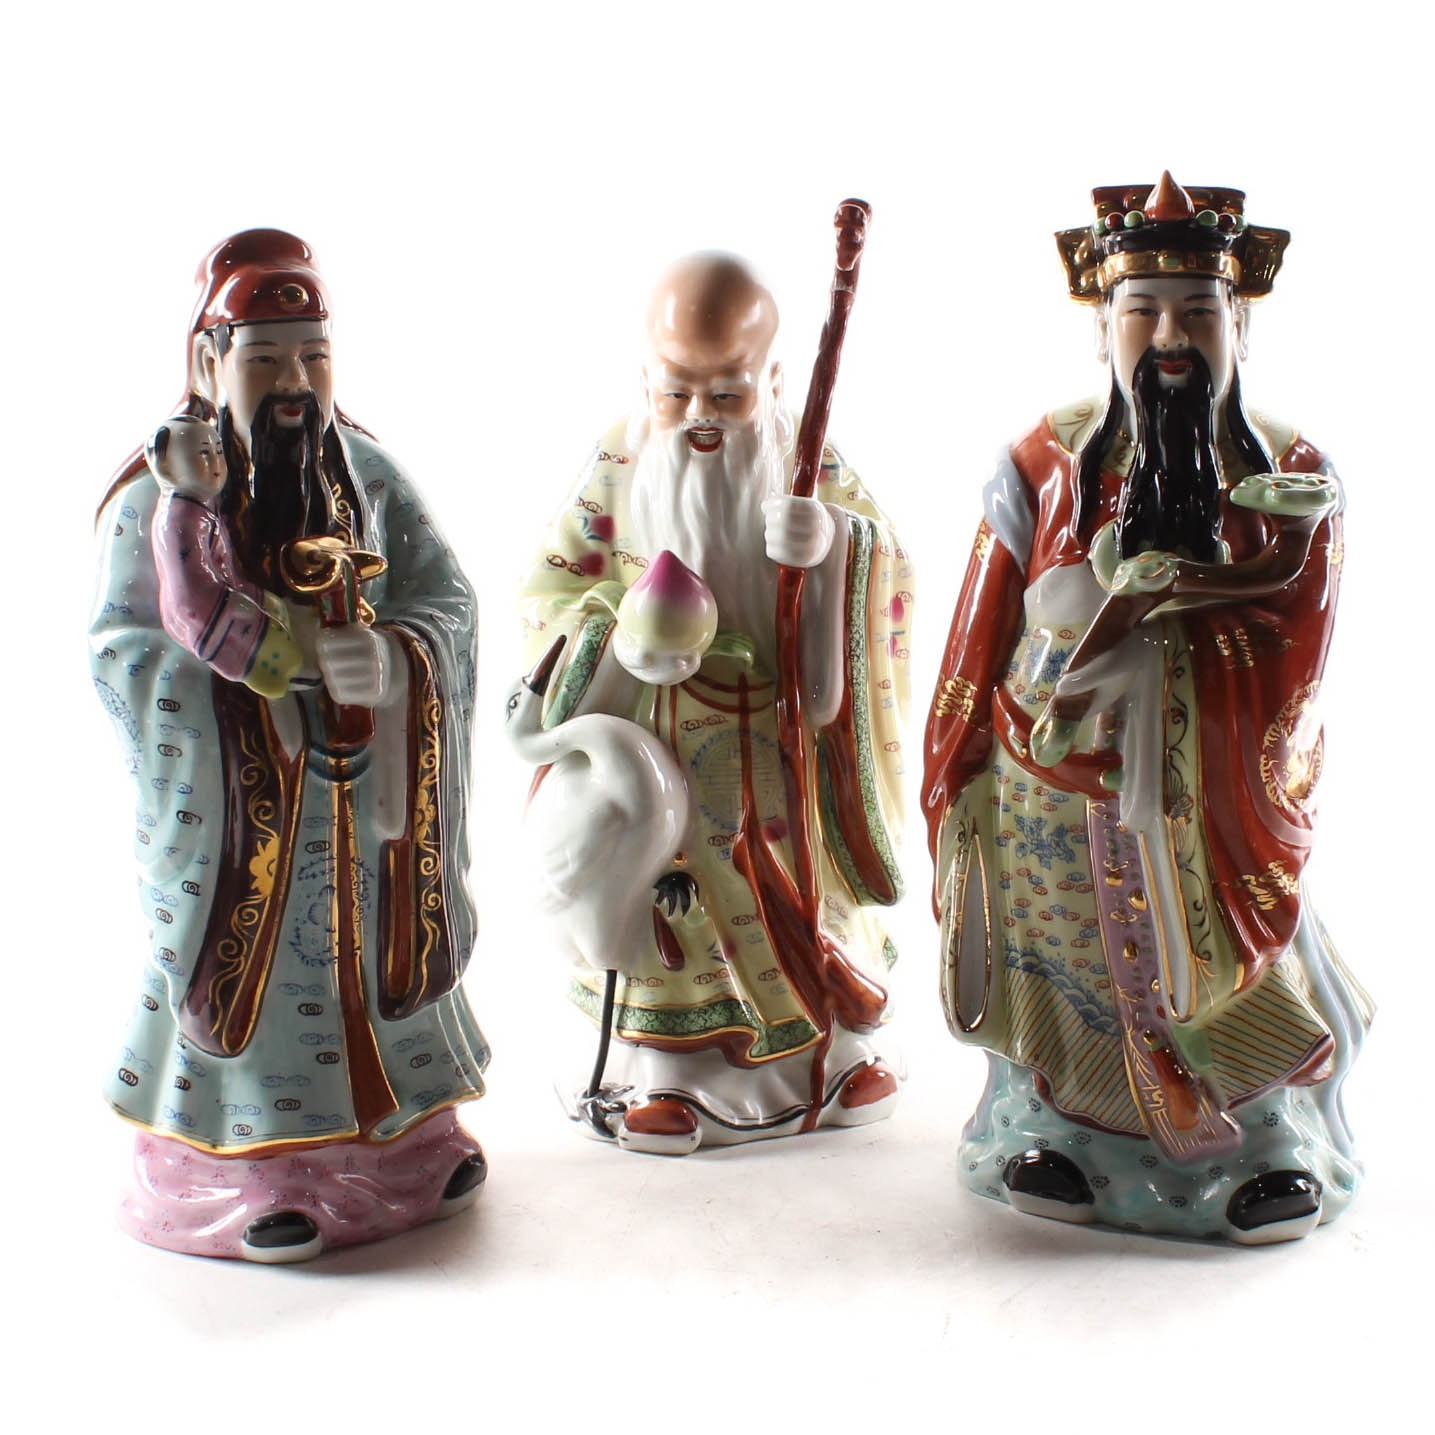 Chinese Sanxing Deities Porcelain Figurines